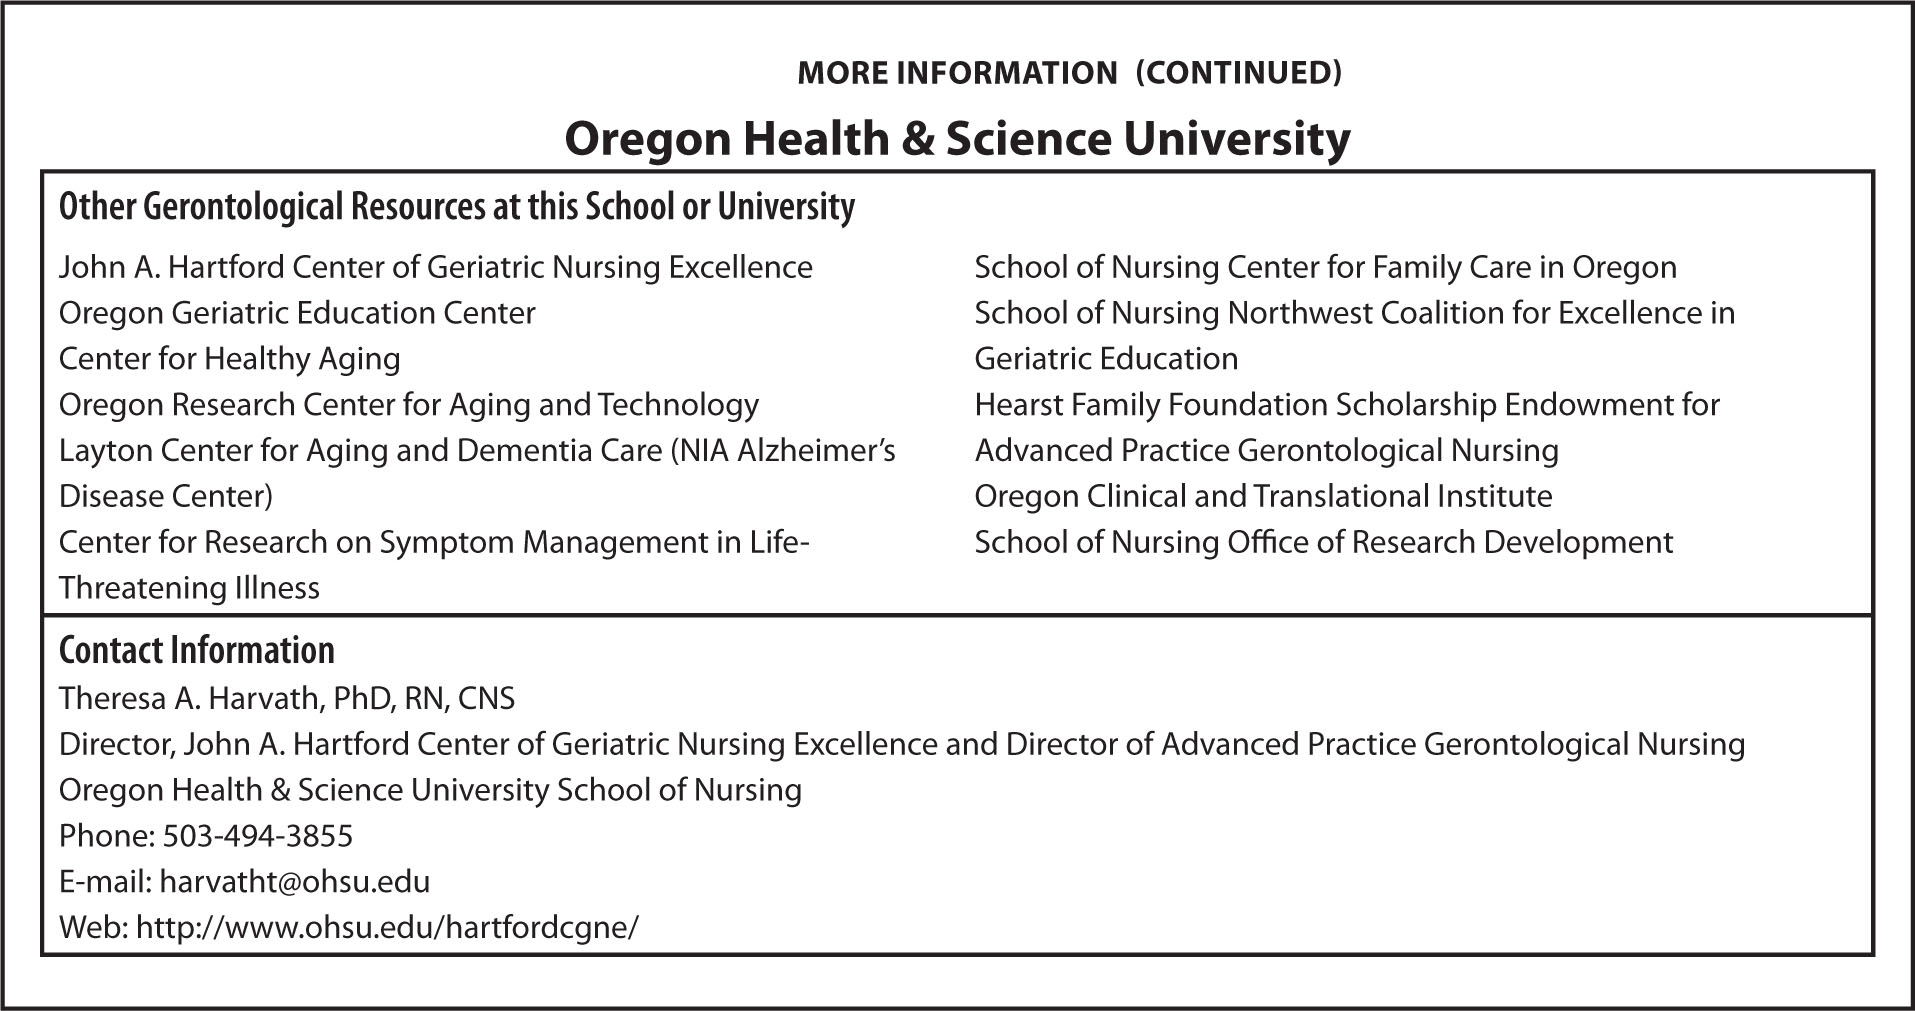 More InformationOregon Health & Science University